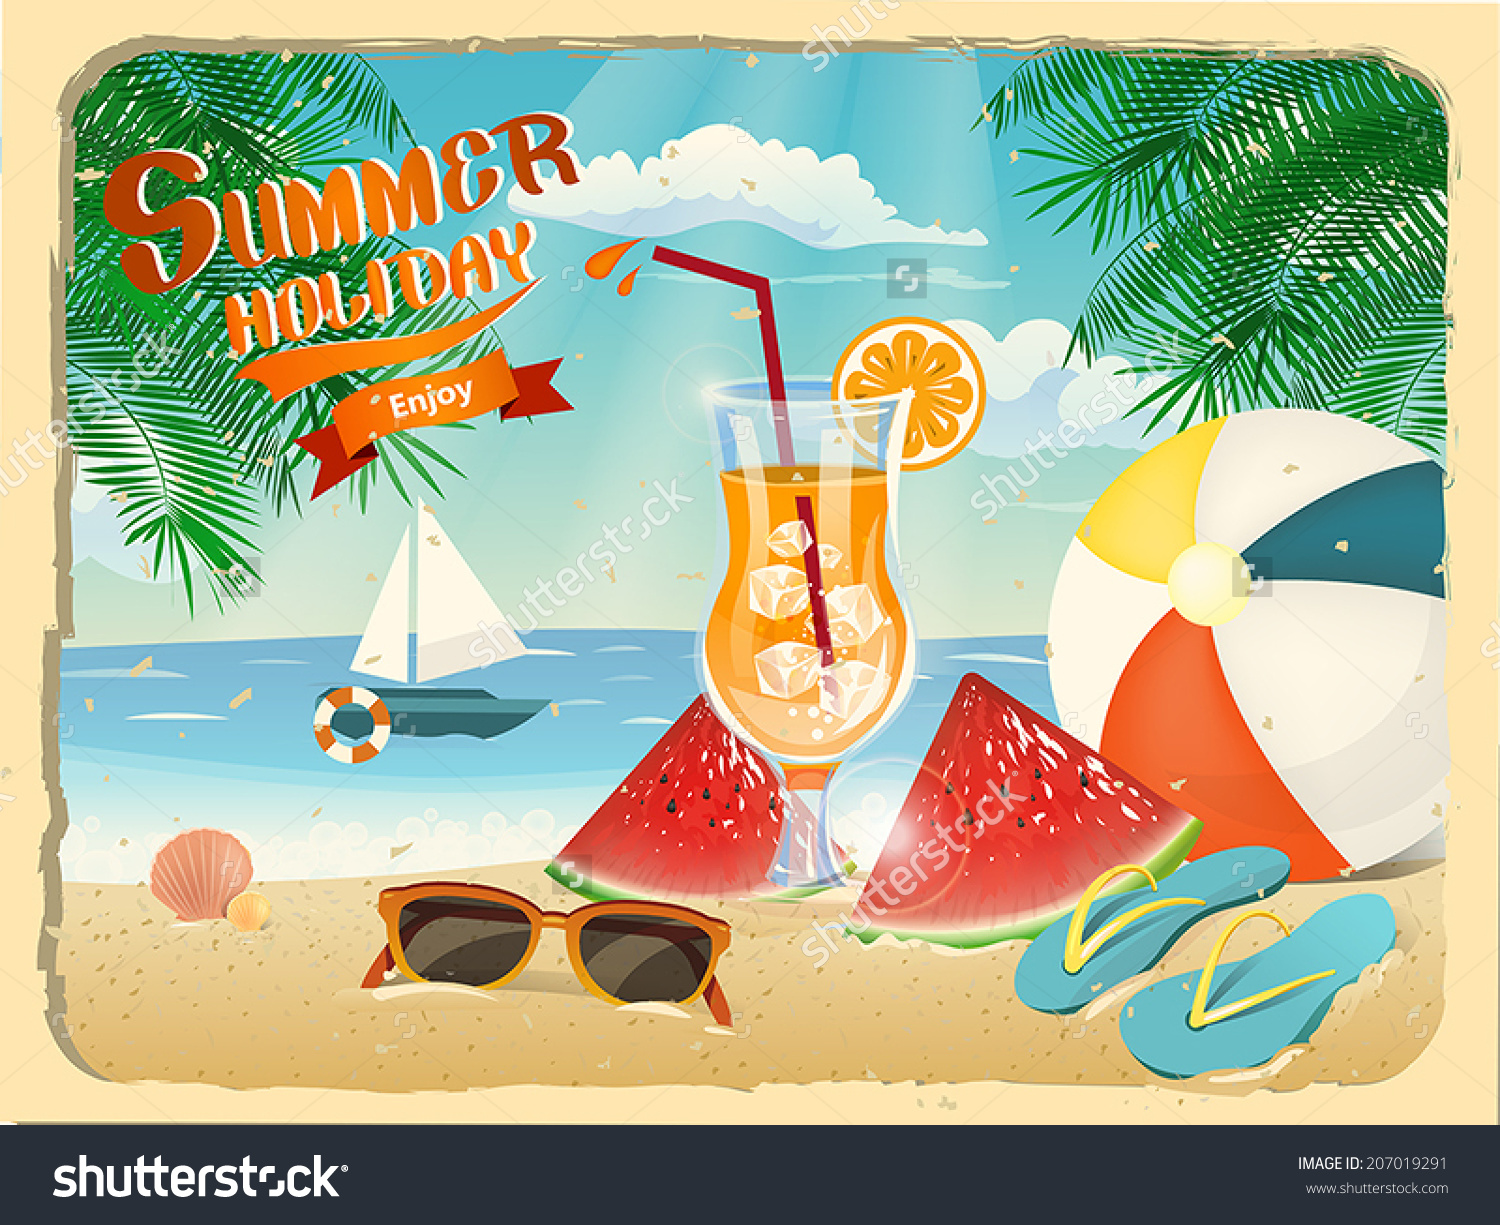 summer holiday poster beach site template stock vector  summer holiday poster of beach site template